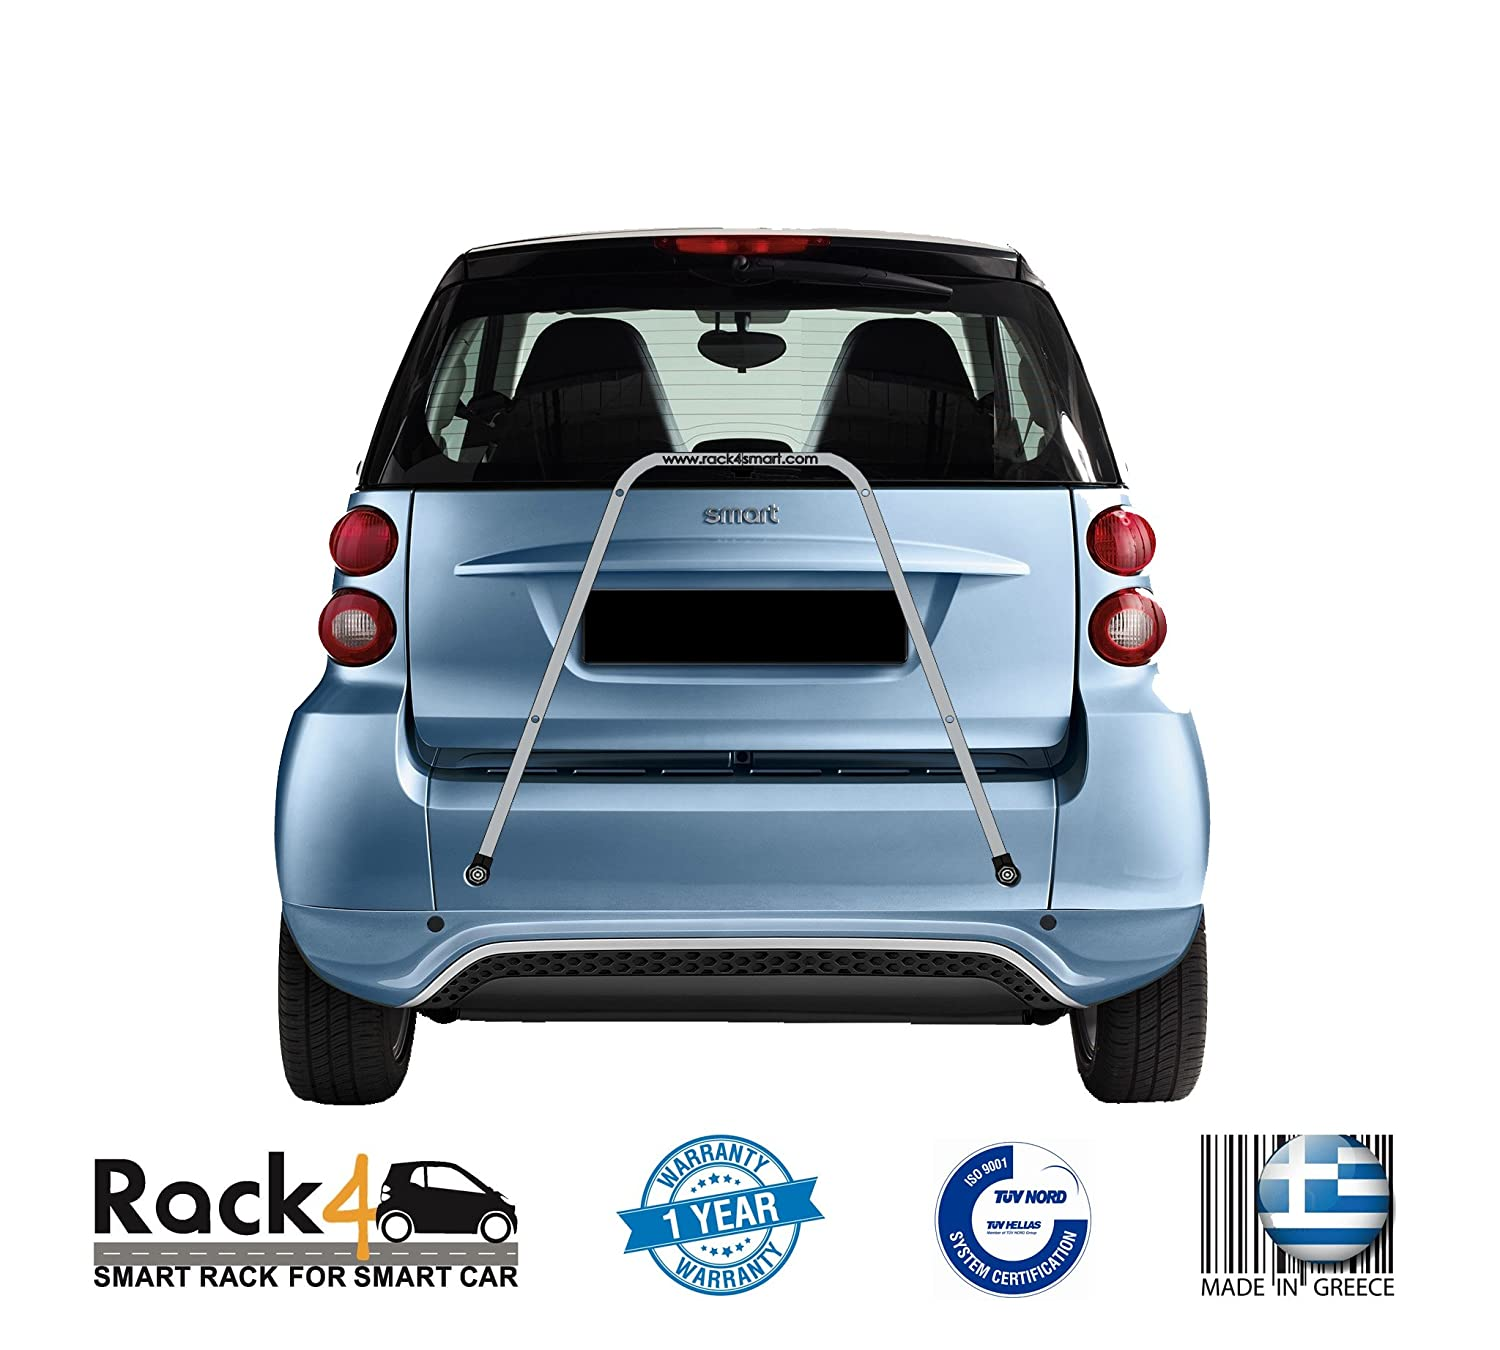 Amazon.com : 2 Bicycles Rack for Smart Fortwo 451 Cabrio - Coupe (Black) by Rack4smart : Sports & Outdoors